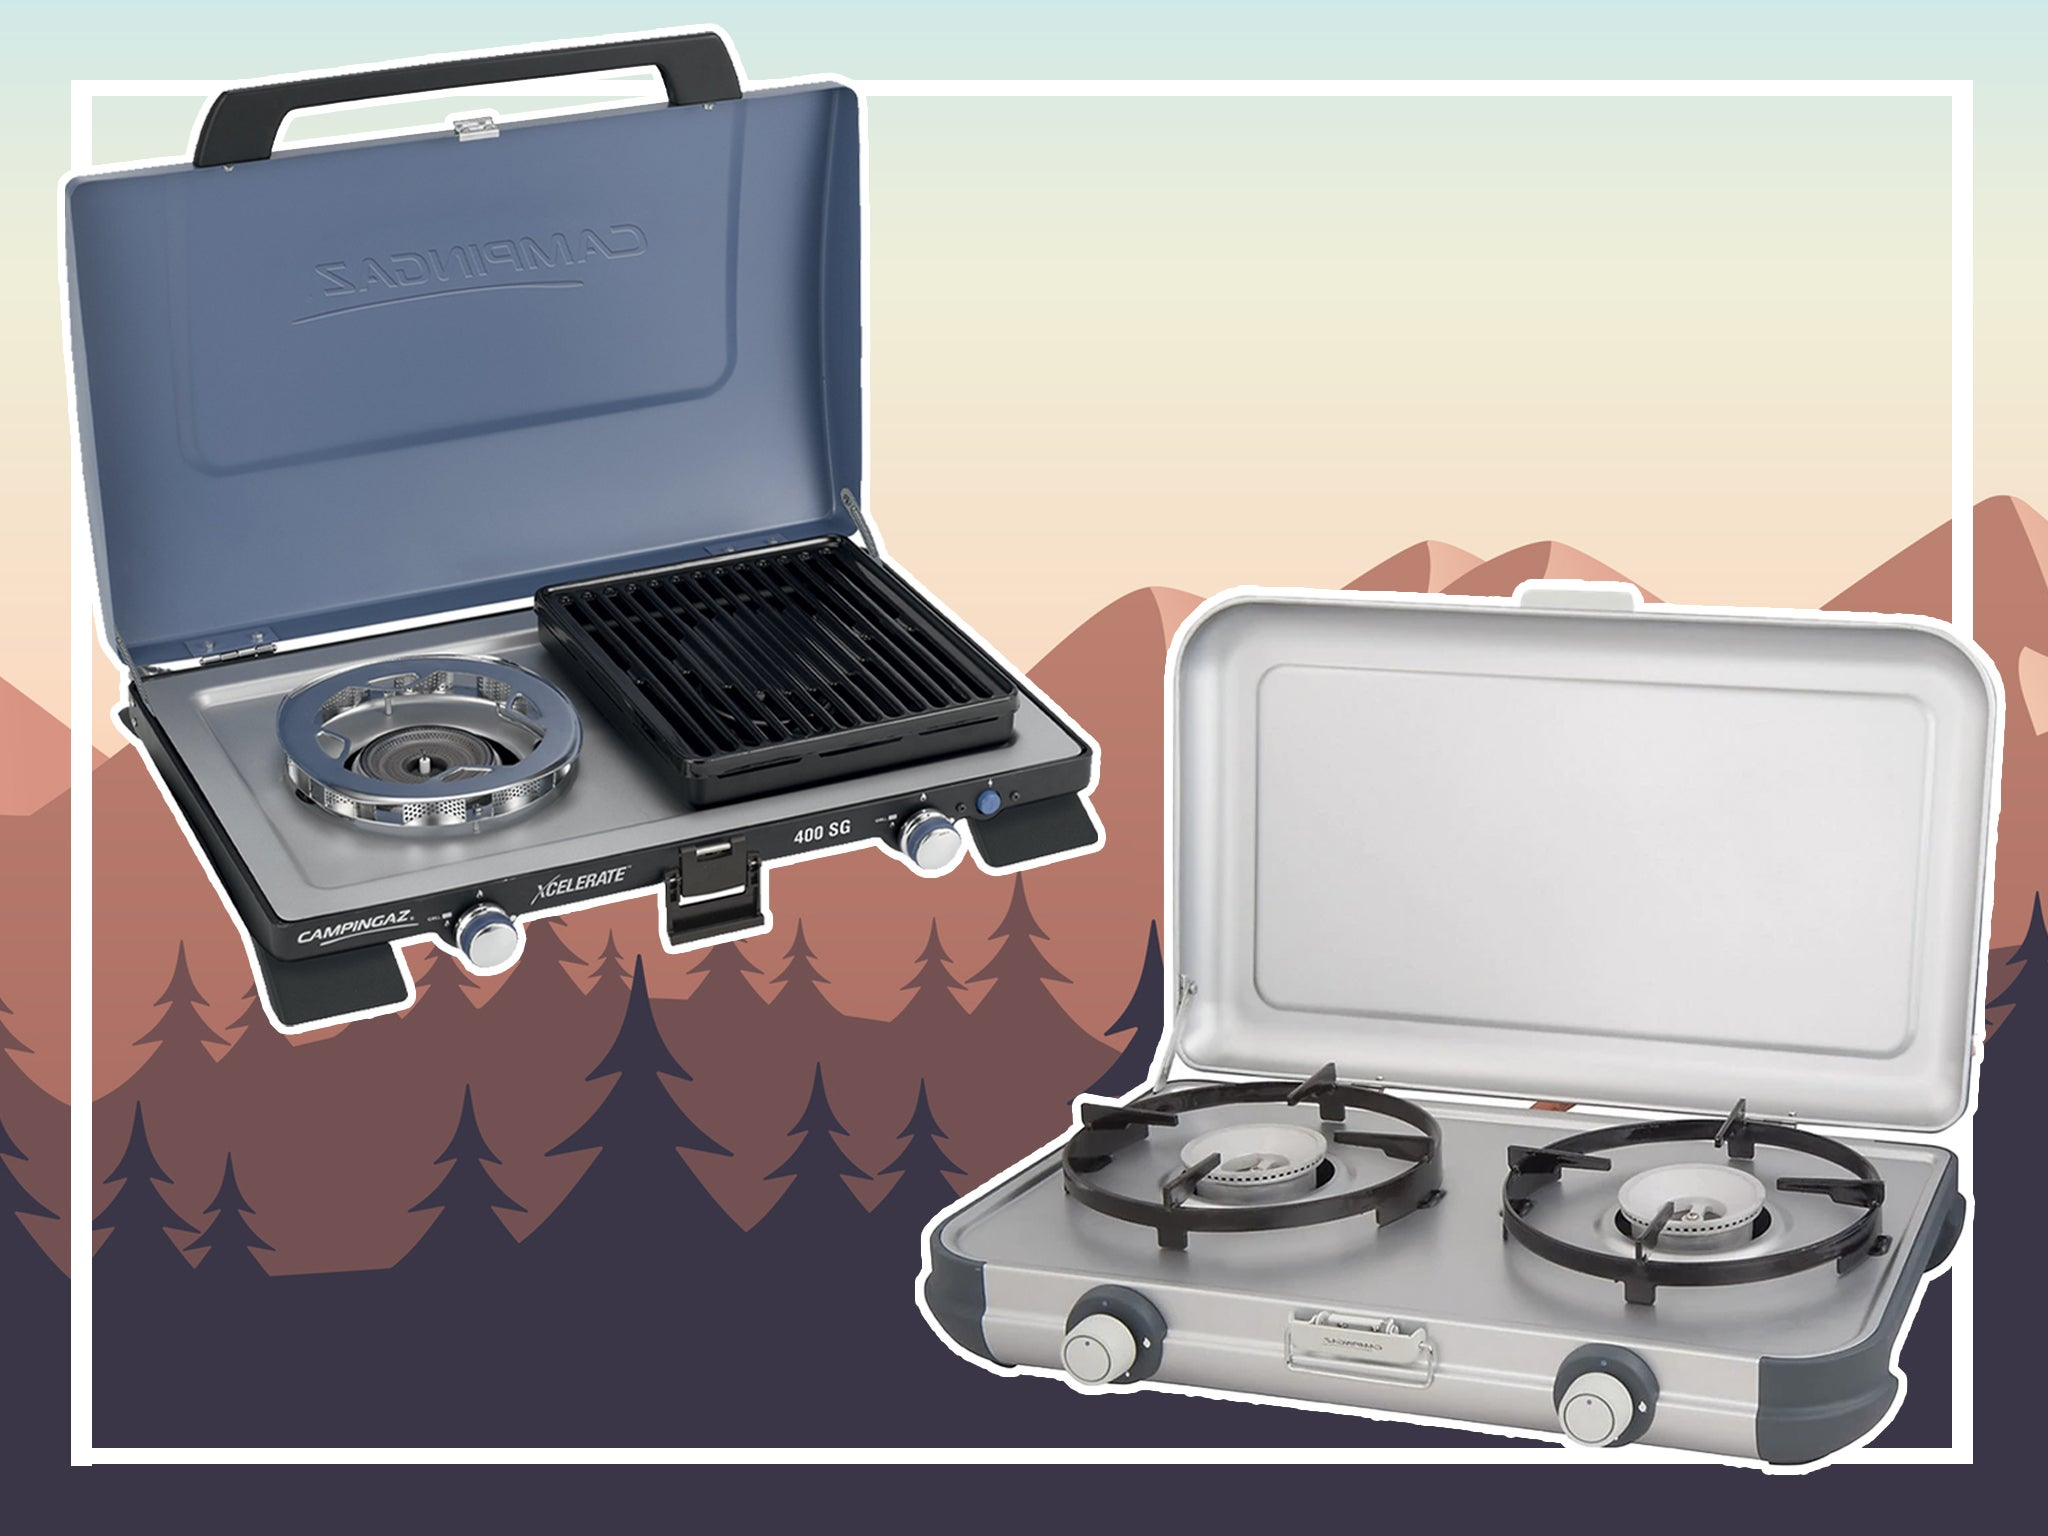 NJ SG-2 Portable Camping Gas Stove Double Burner BBQ Cooker Butane Outdoor Grill Plate /& CASE